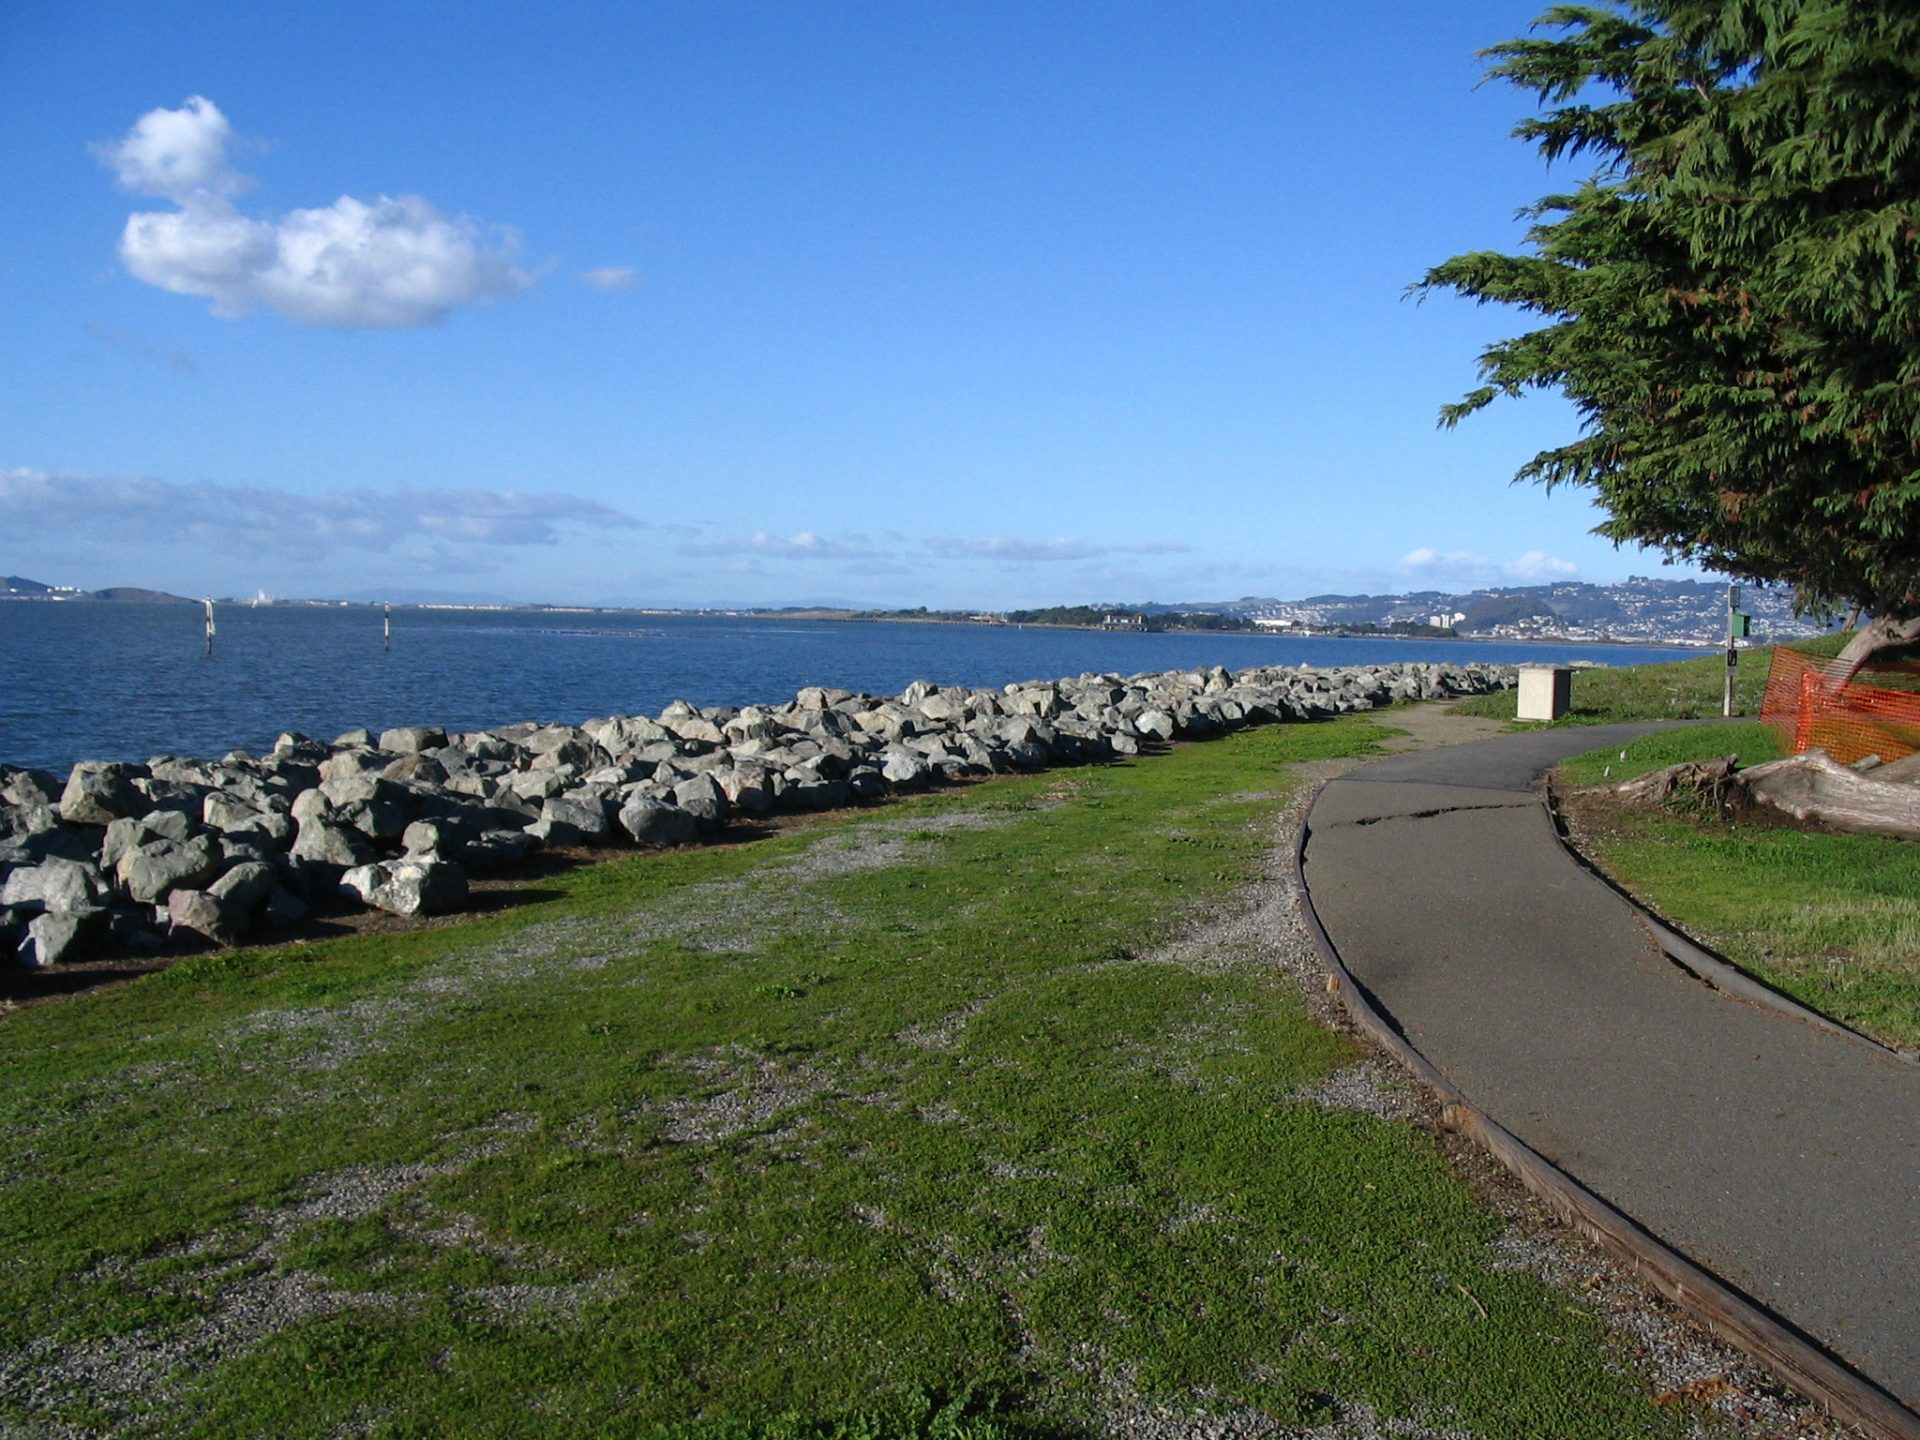 Blue sky and water, riprap, green grass, and curving paved path